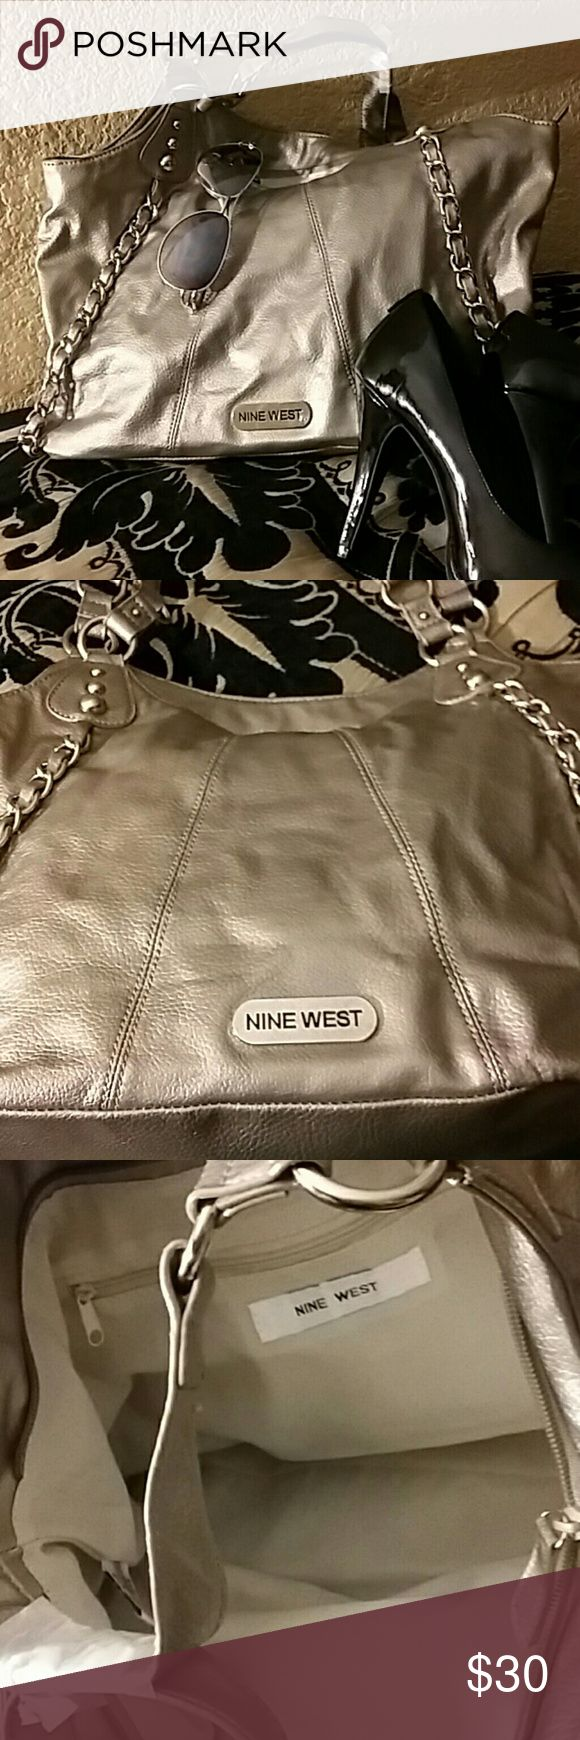 Nine West Silver/gold tone metallic handbag I had a really had time describing the color.... it has silver hardware and the overall color is silver but it has a gold tone to it. Almost a champagne color. Anyhow it is cute, never used and in great condition. Nine West Bags